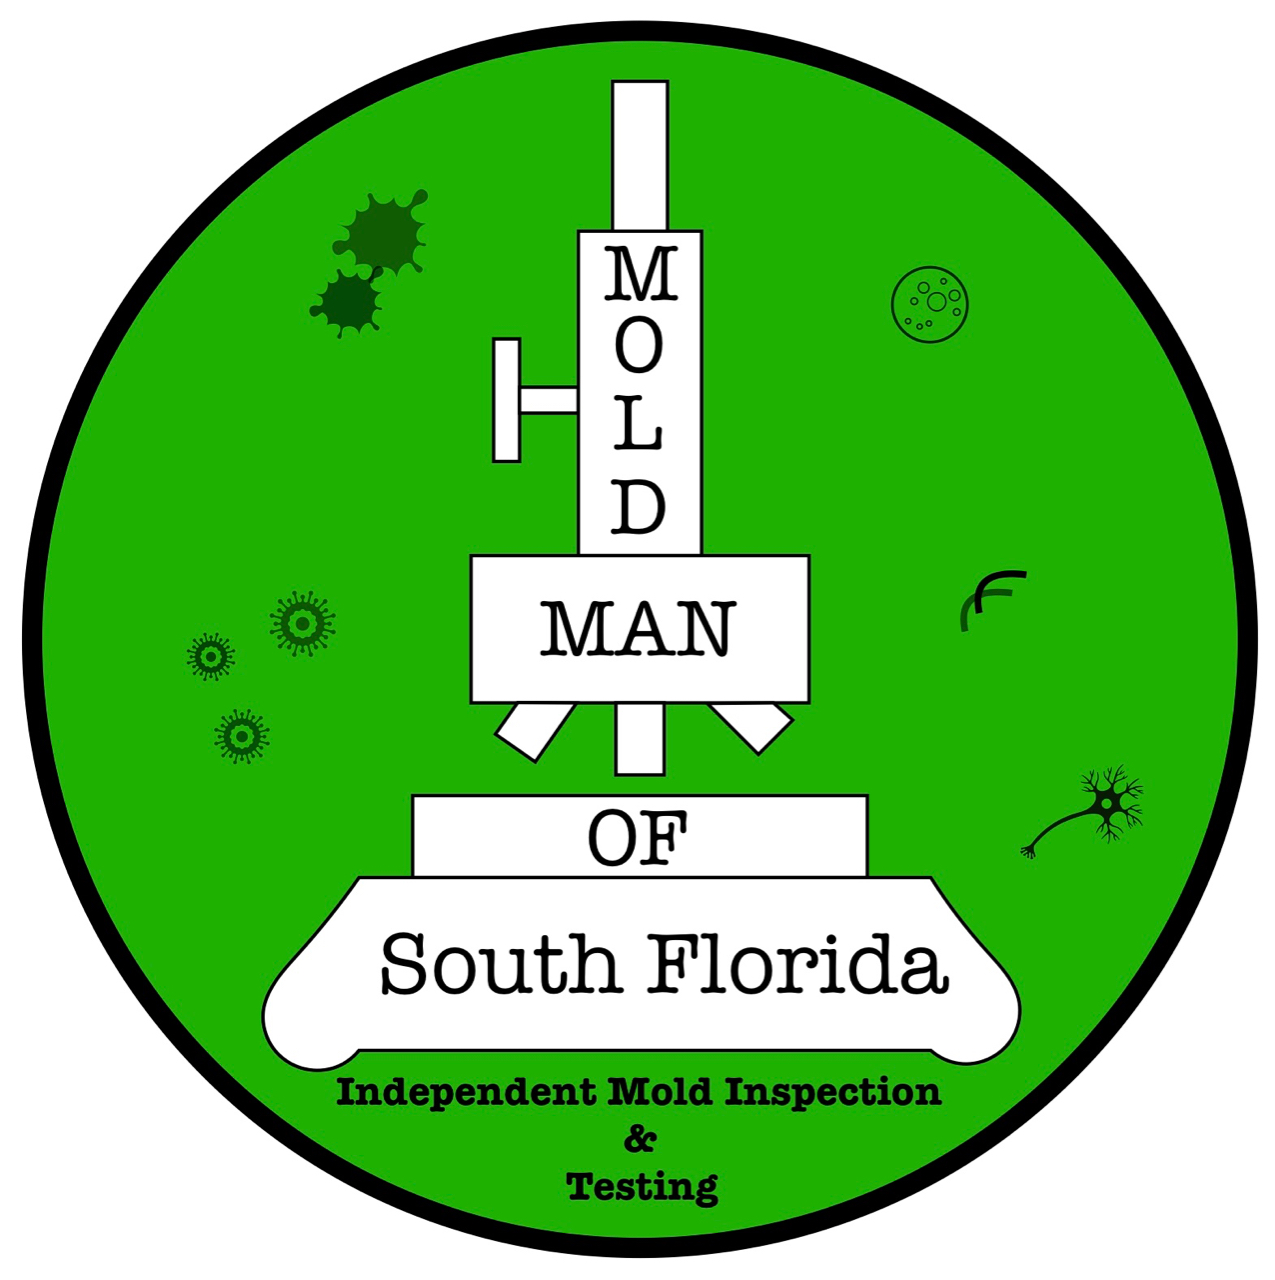 Mold Man Of South Florida